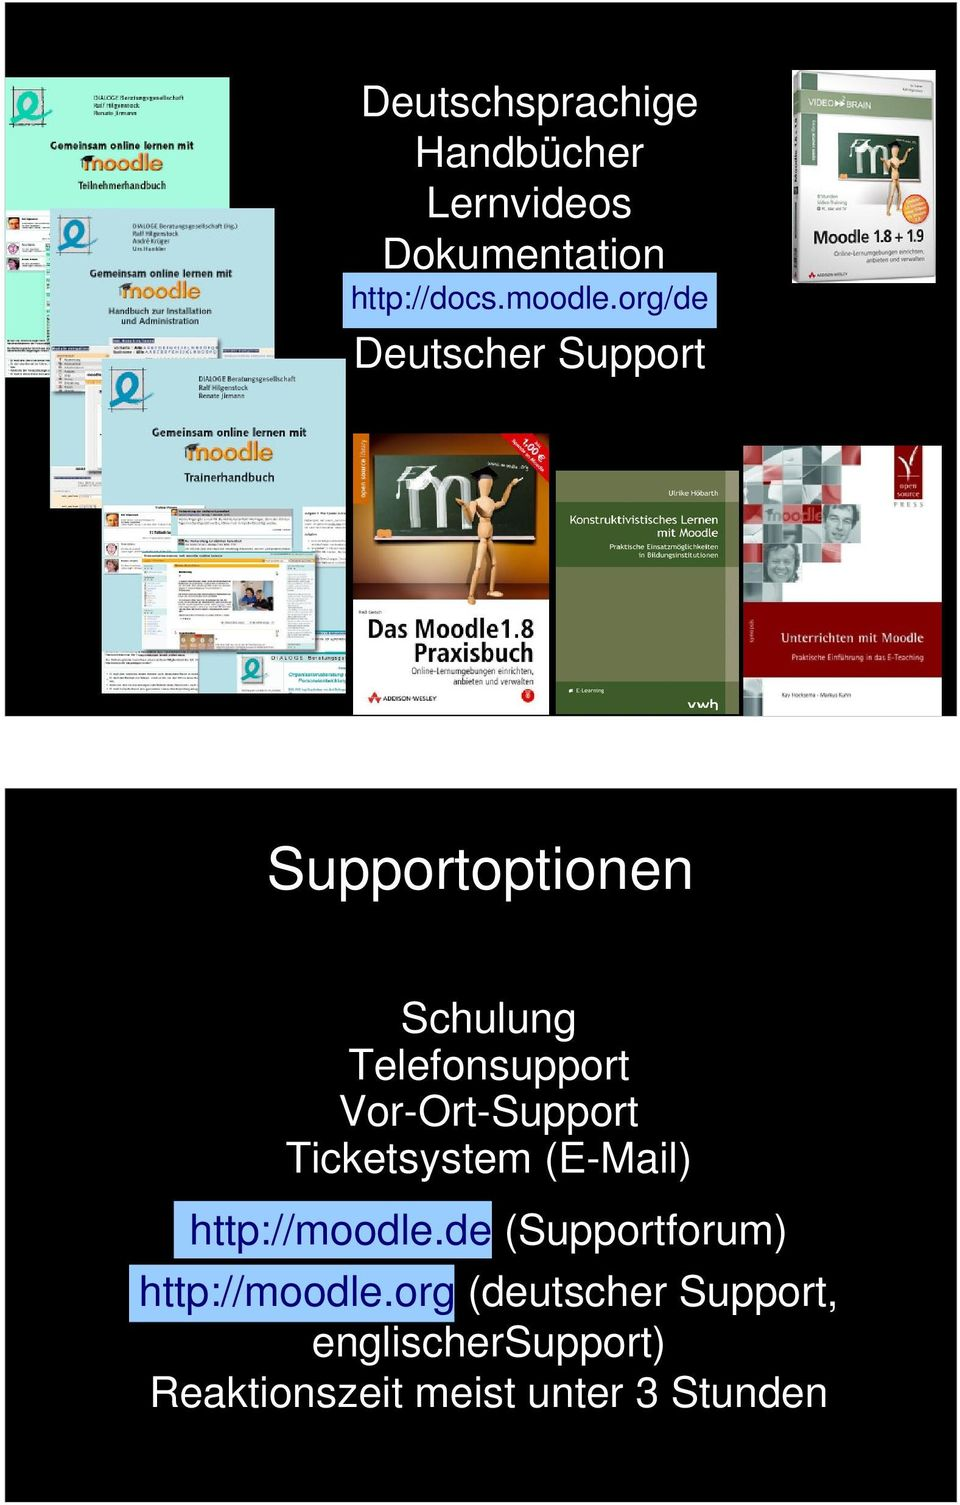 Vor-Ort-Support Ticketsystem (E-Mail) http://moodle.